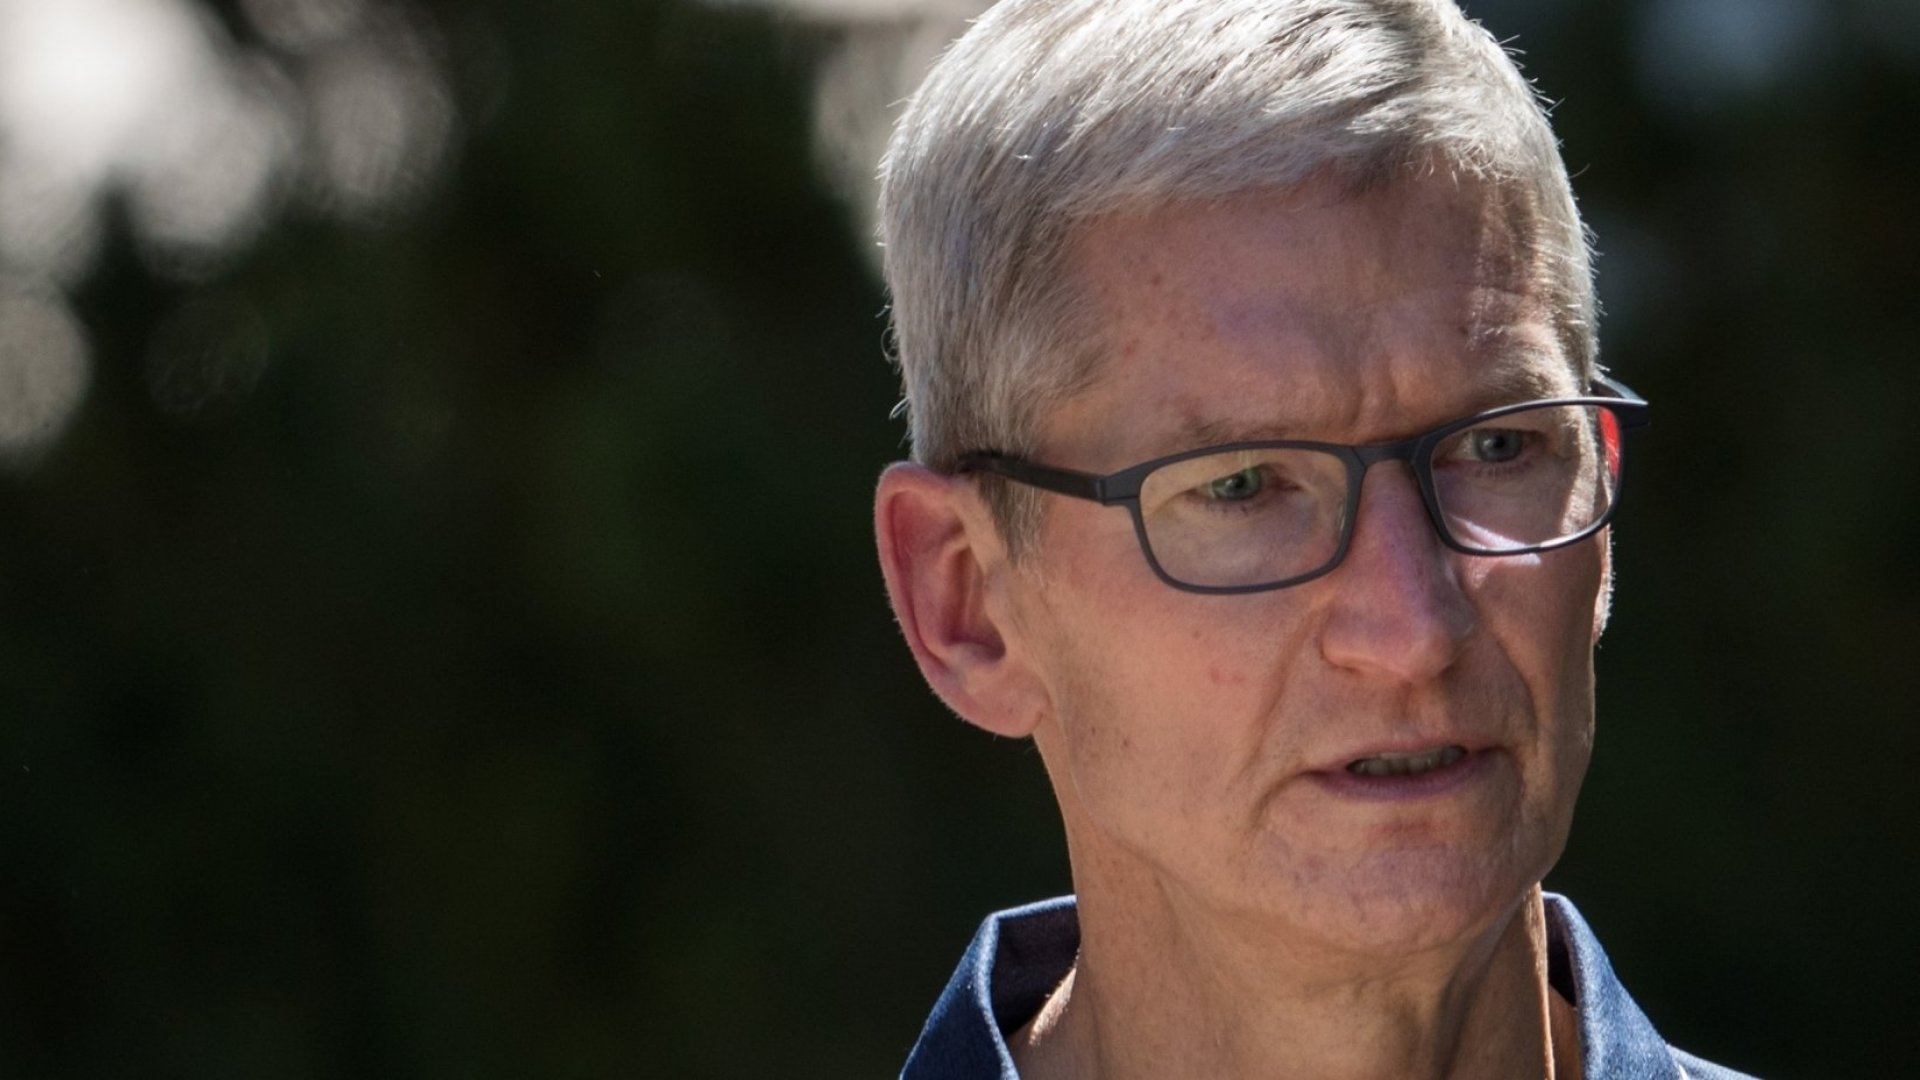 Apple CEO Tim Cook Calls Hate a 'Cancer' and Takes a Stand Against Trump